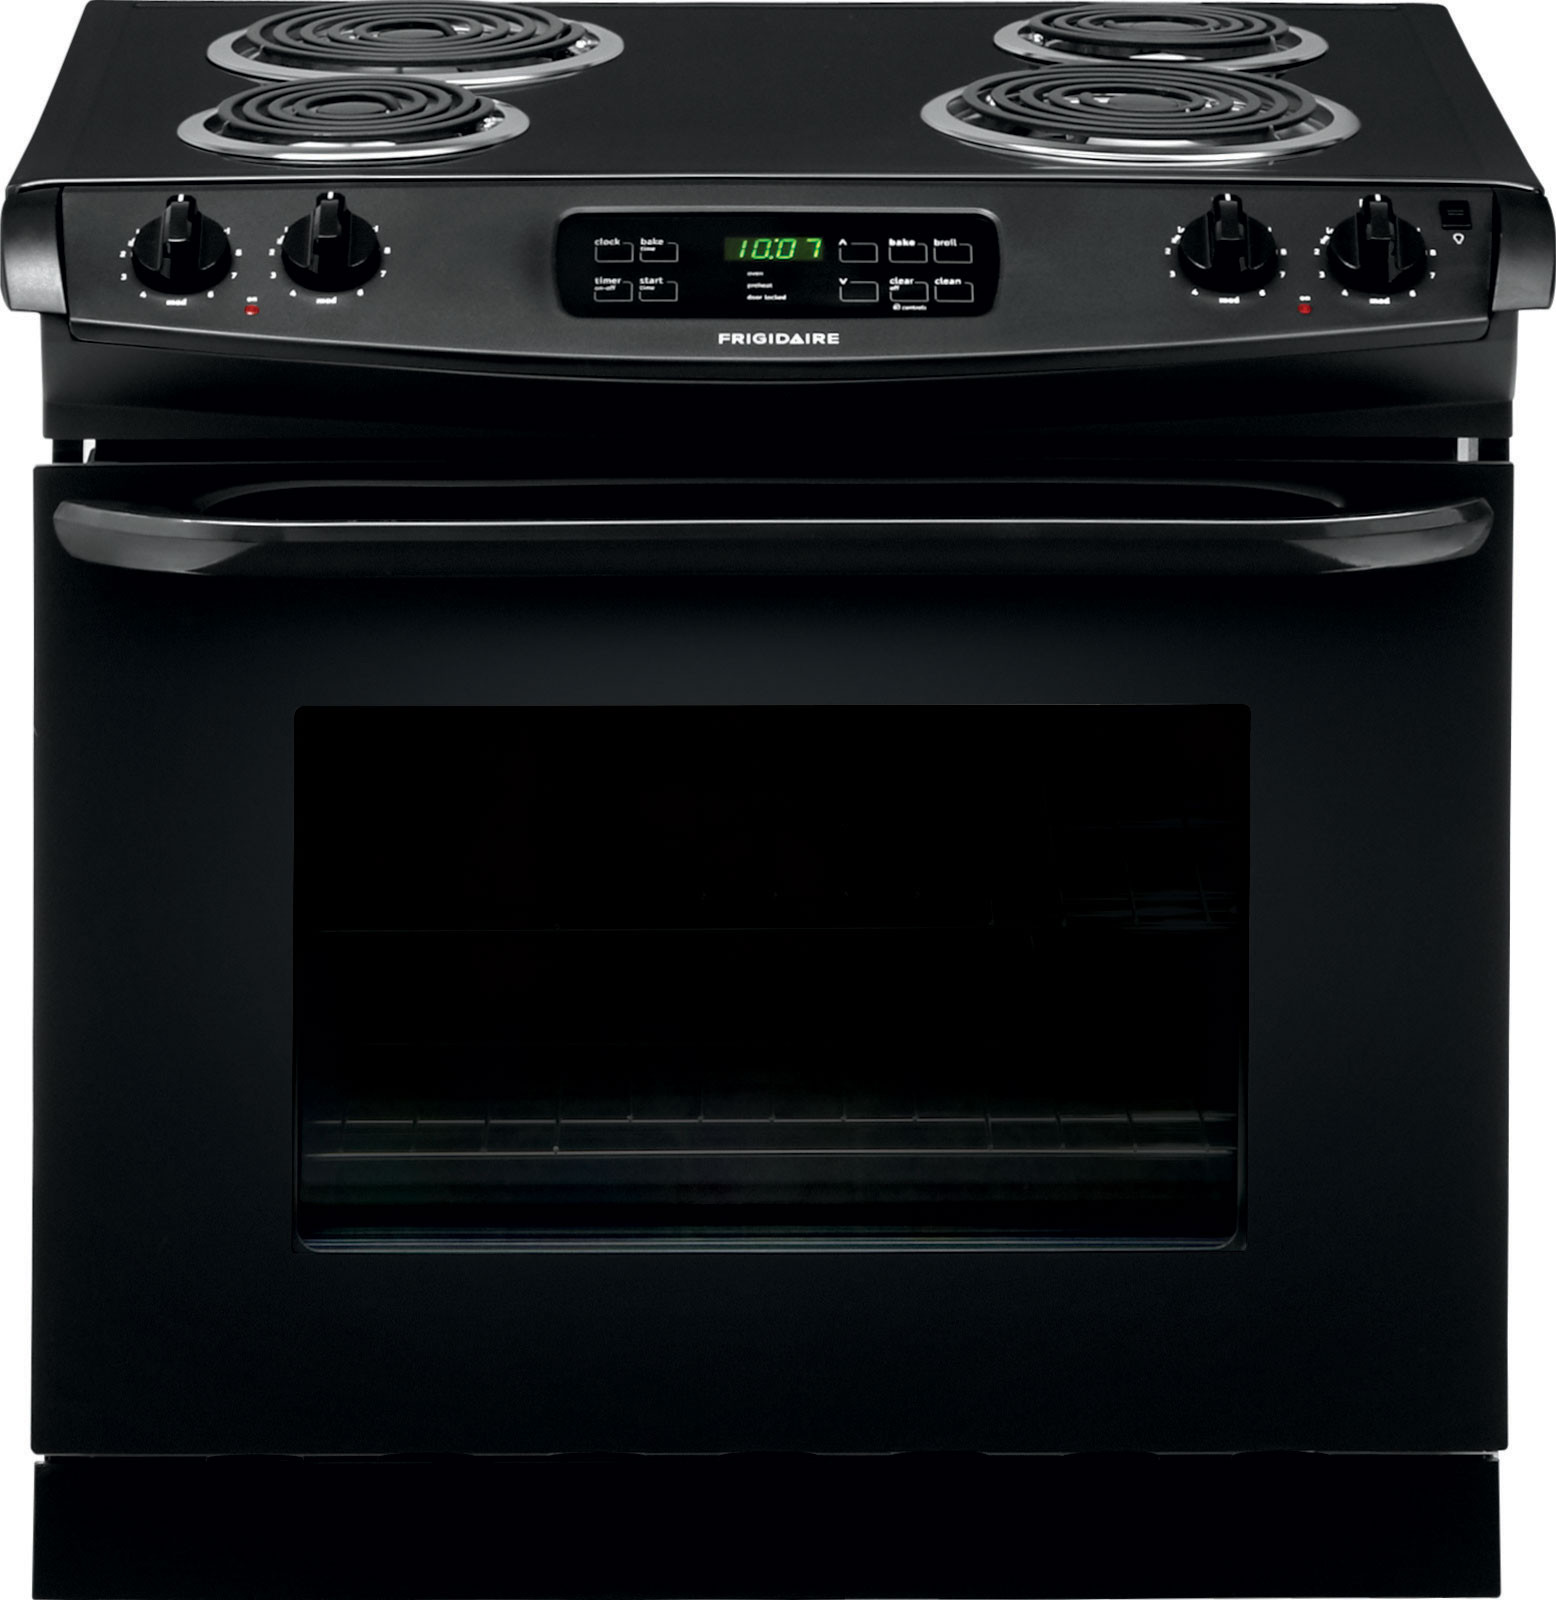 Frigidaire Ffed3015pb 30 Inch Drop In Electric Range With Multiple